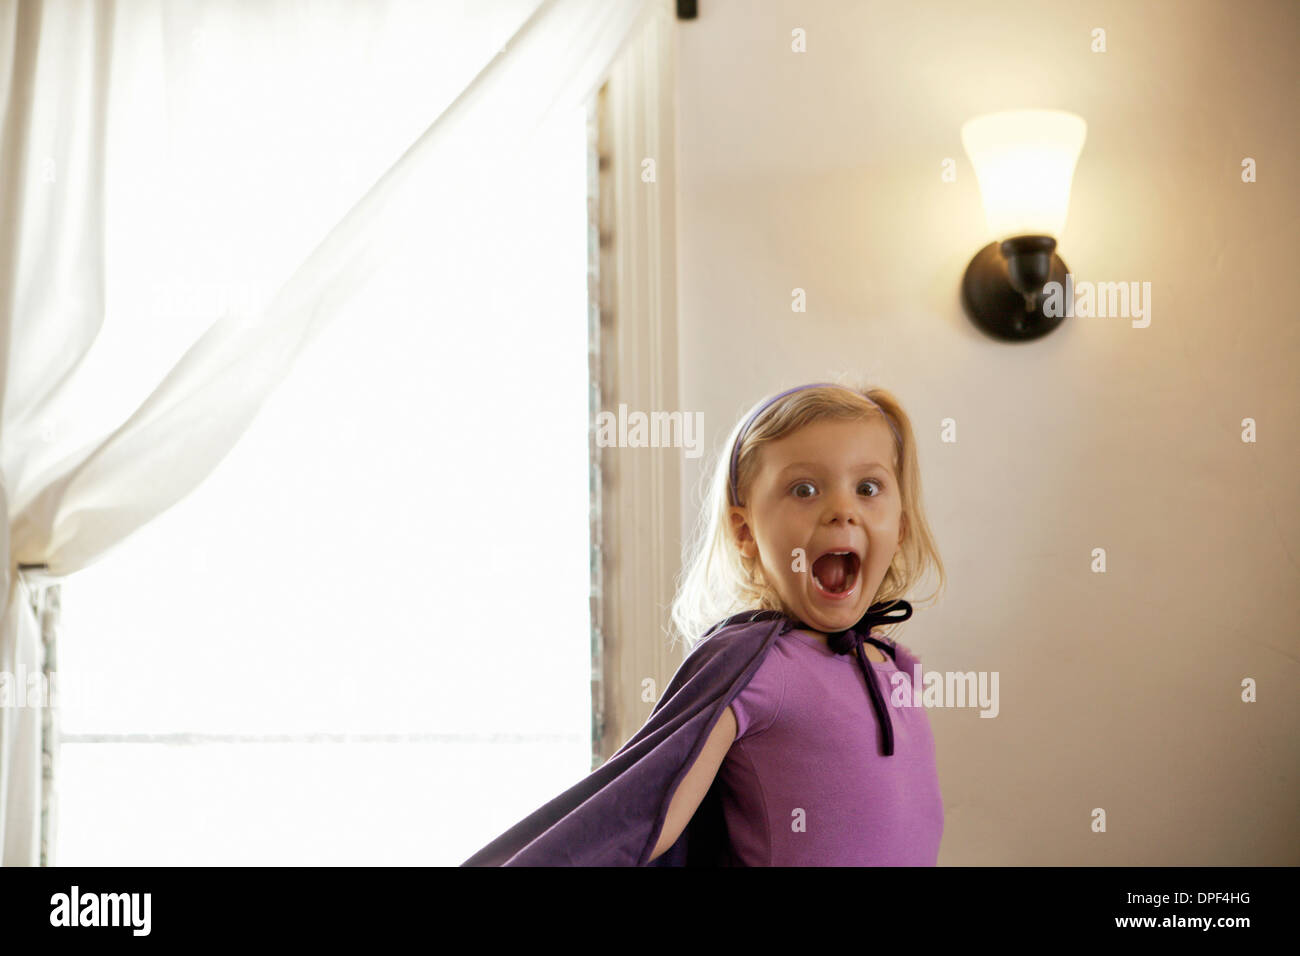 Portrait of young girl pulling a face Stock Photo